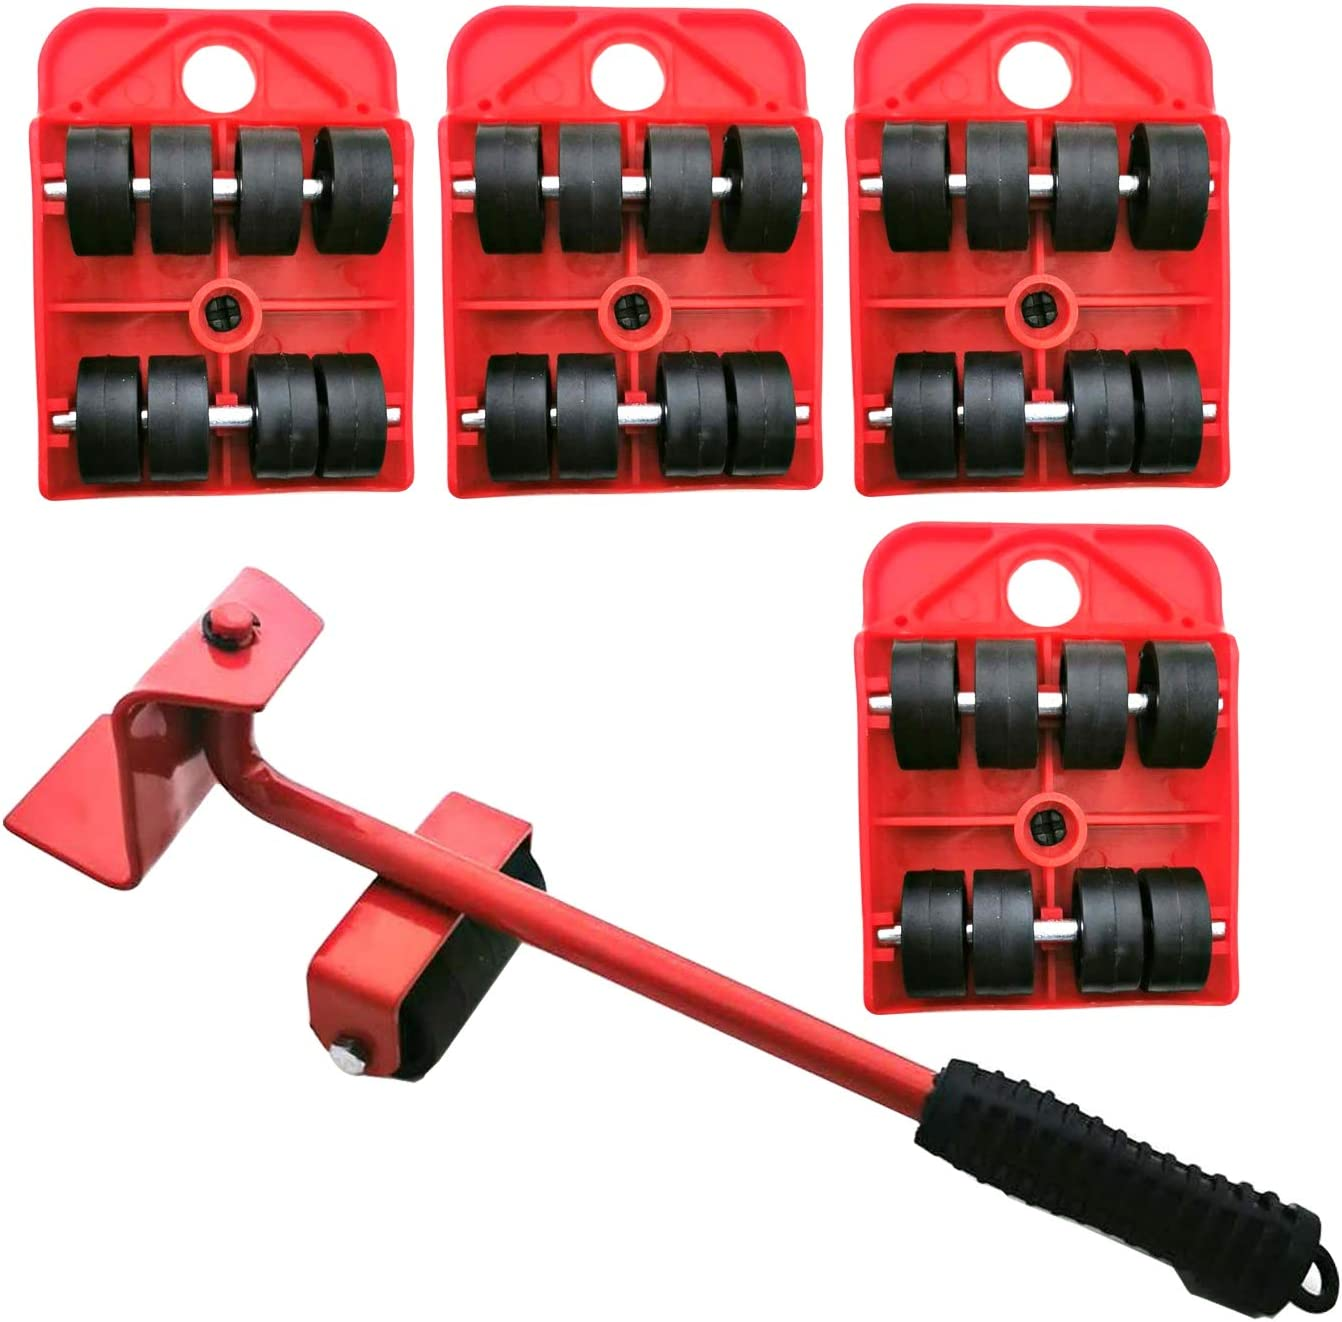 Markeny 5 Pack Mover Tool Set Furniture Lifter Durable Heavy Appliance Furniture Lifting 360 Degree Rotatable Pads, 1 Lifting Rod and 4 Furniture Moving Rollers(Red)